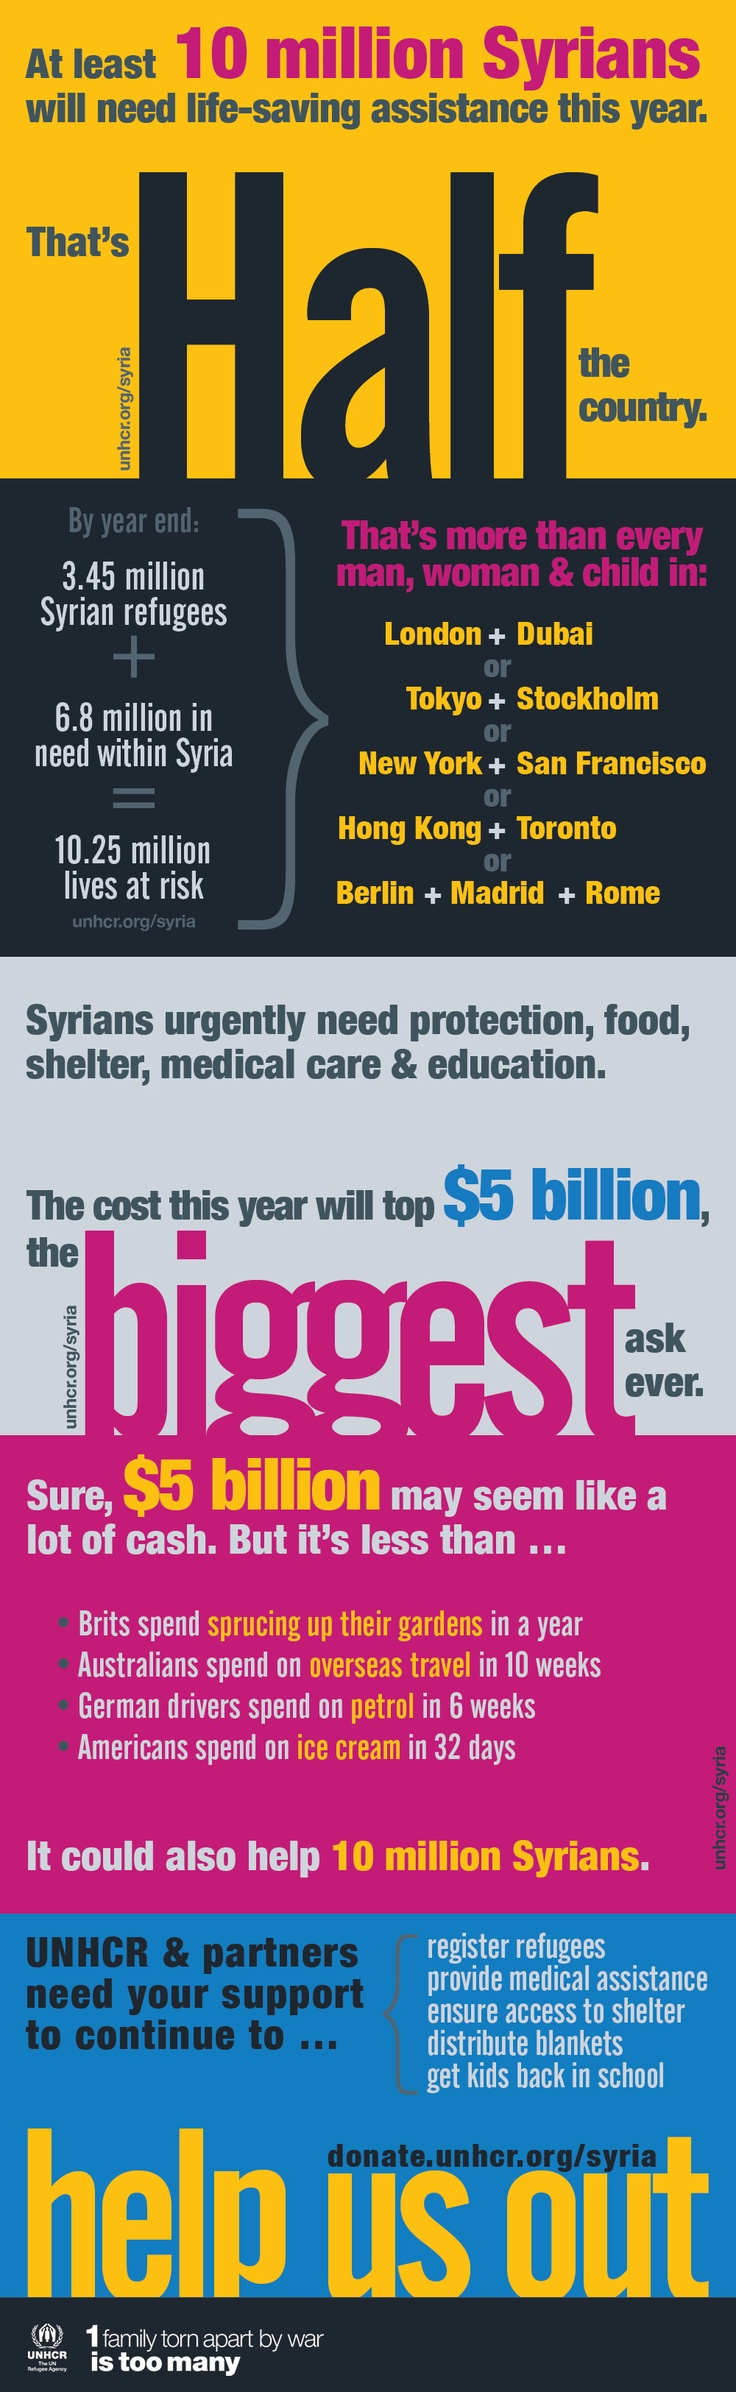 At least 10m #Syrians, 1/2 of the country's pop., w/ need life-saving assistance this year & the cost w/ top $5b for food, shelter, medical care & protection. Donate @UN Refugee